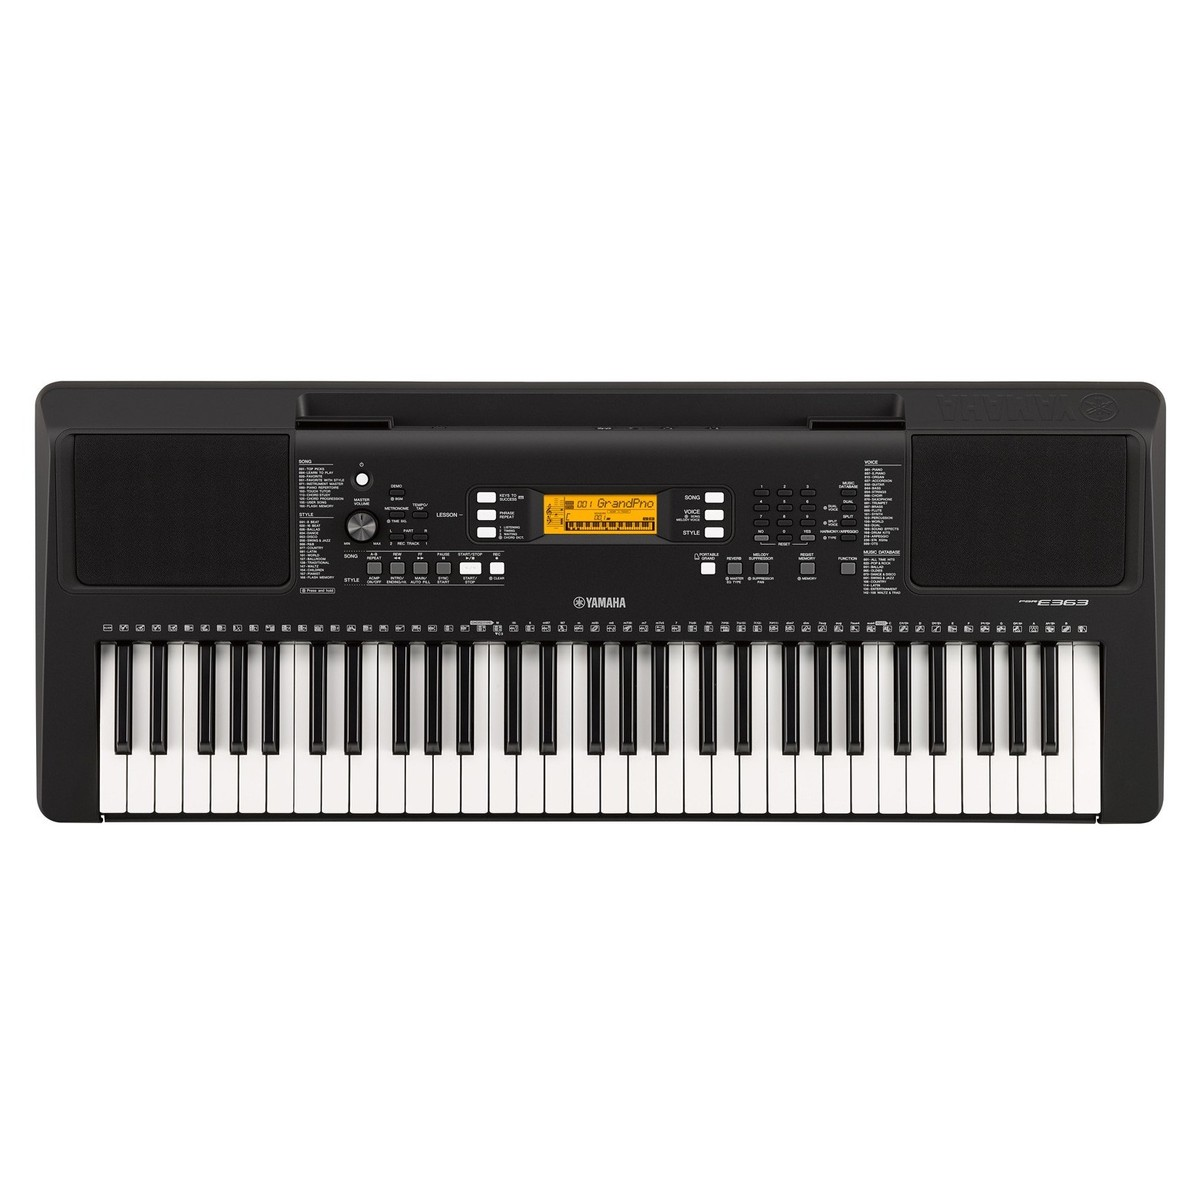 Yamaha PSR-E363 digitalkeyboard